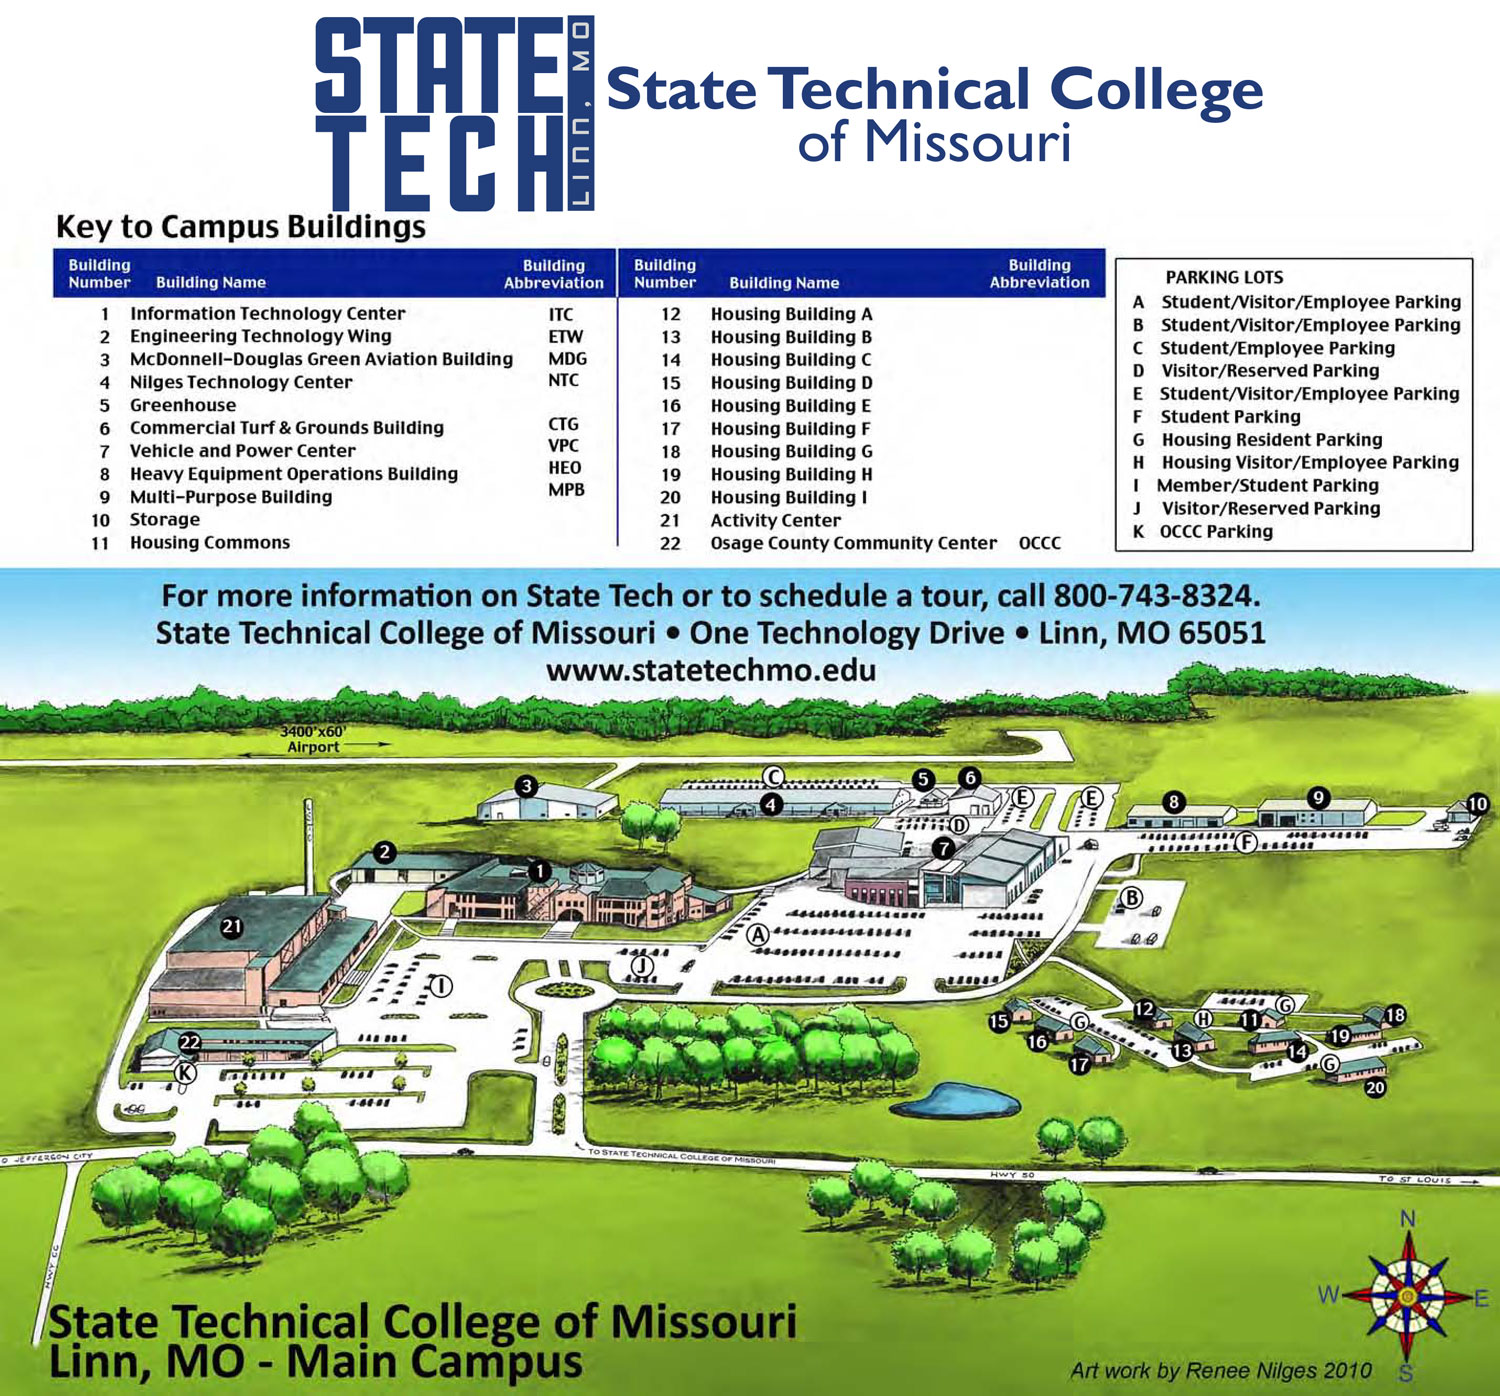 map directions state technical college of missouri from